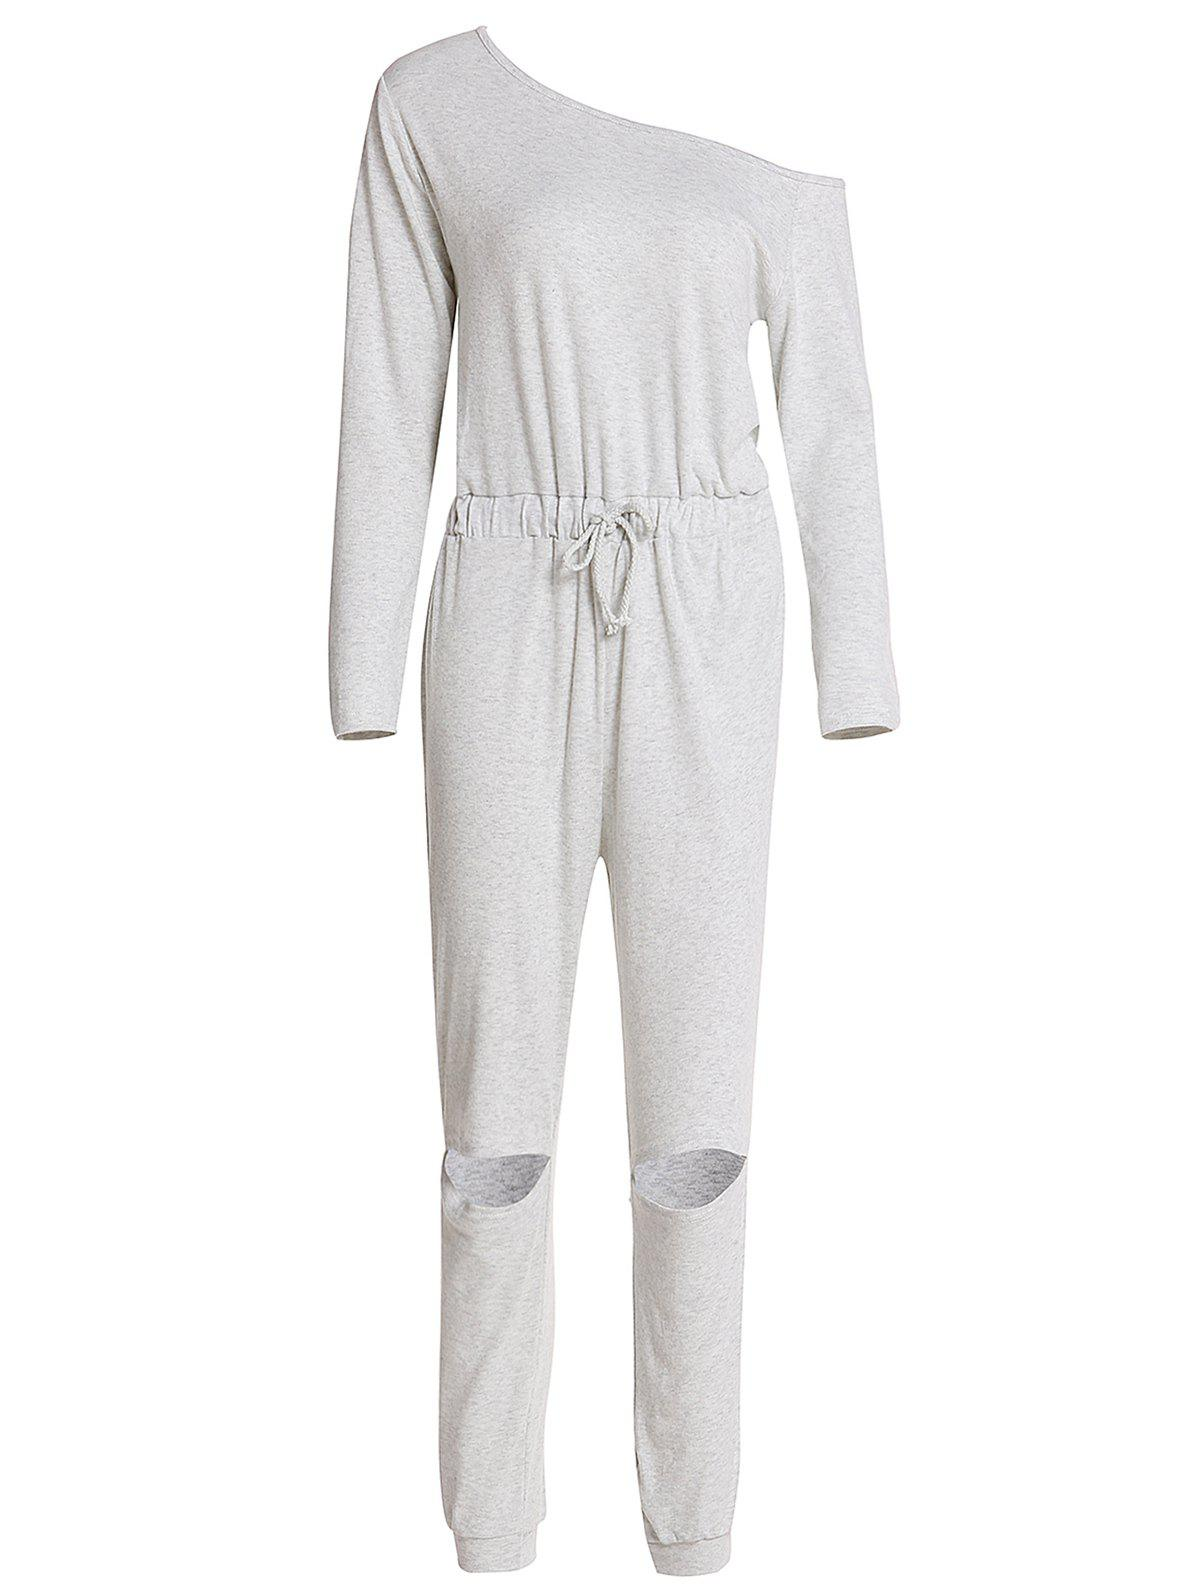 Concise Long Sleeve Waist Tied Cut Out Gray Jumpsuit For Women - GRAY XL